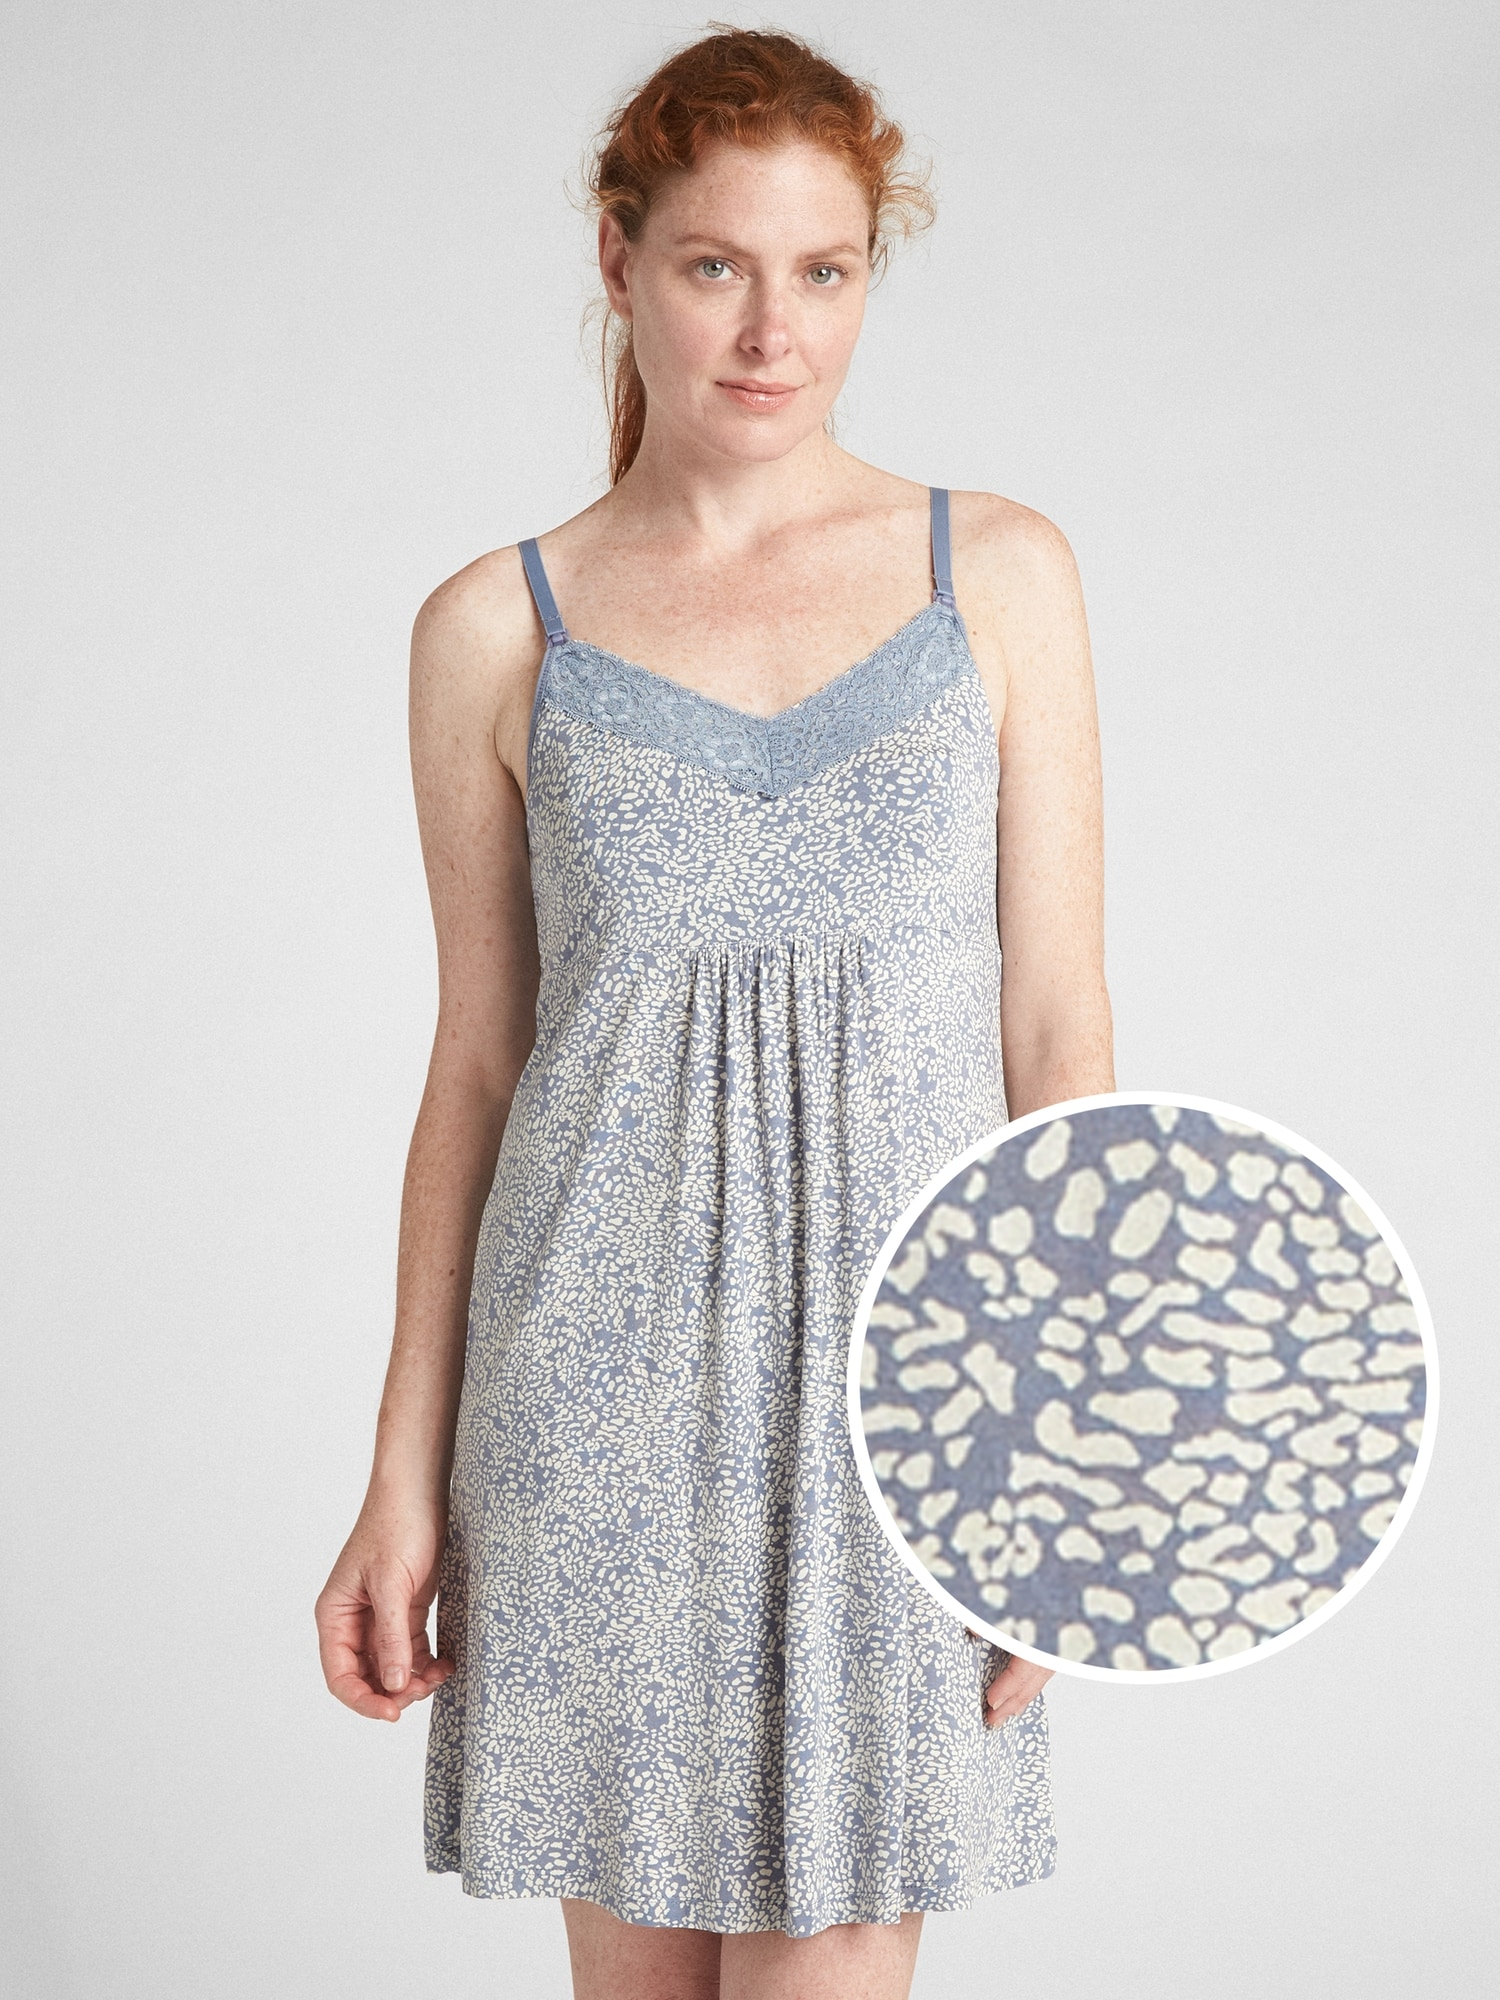 Maternity Nursing Nightgown | Gap